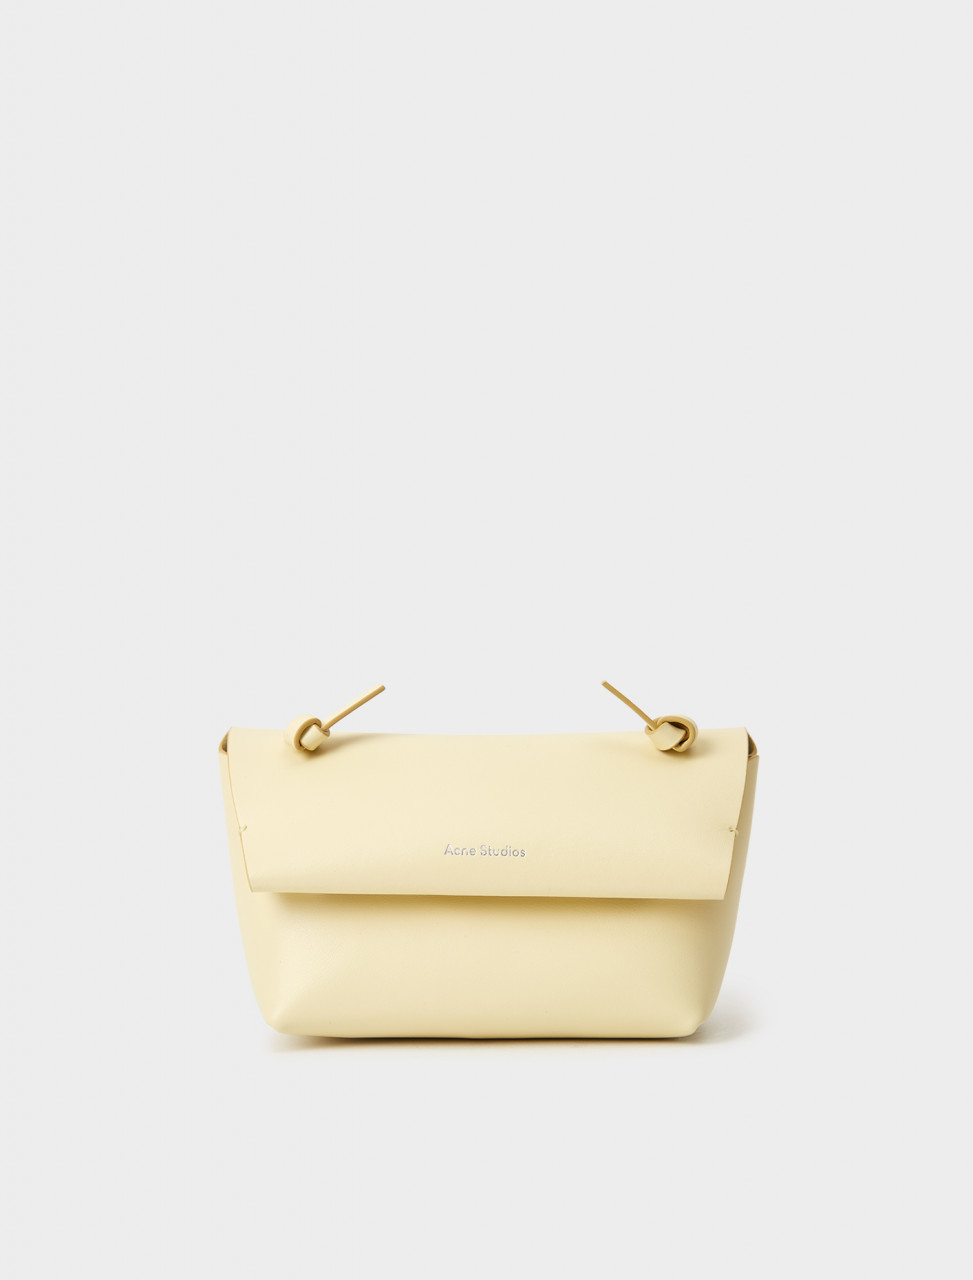 CG0151-ABV ACNE STUDIOS KNOTTED STRAP PURSE VANILLA YELLOW